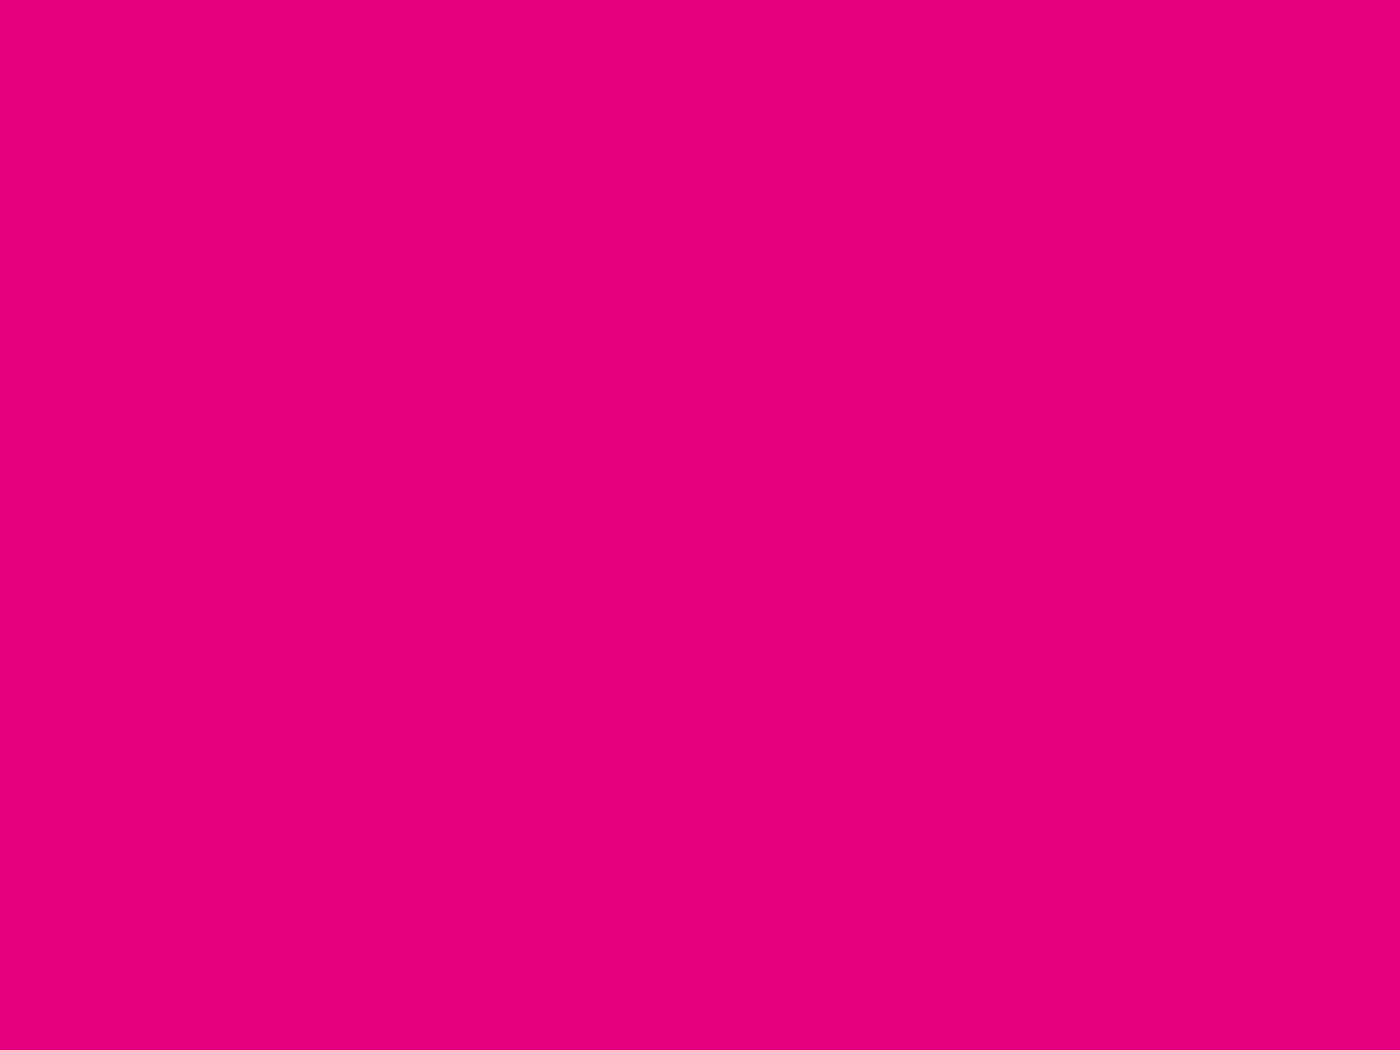 1400x1050 Mexican Pink Solid Color Background